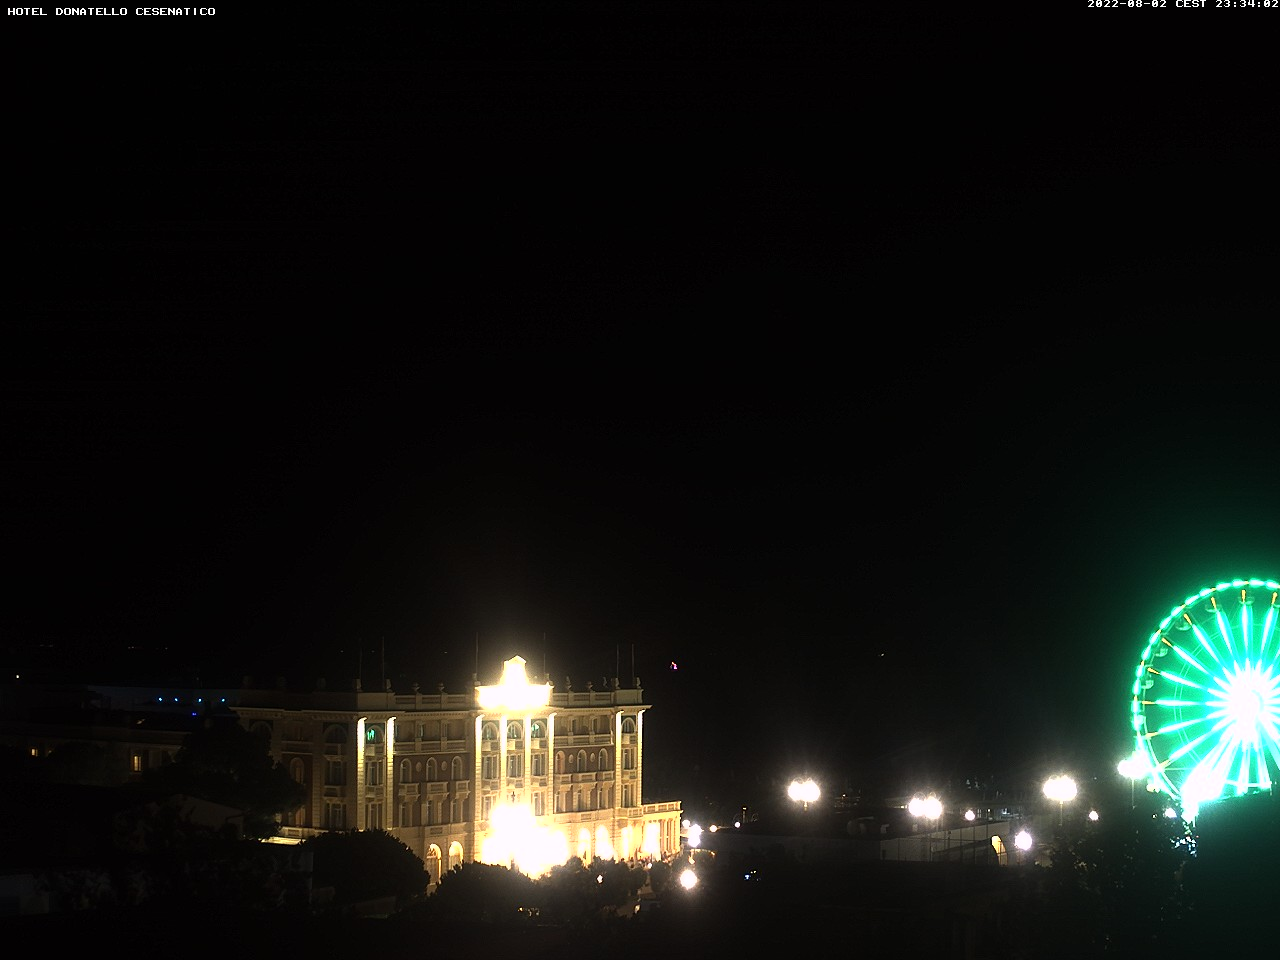 Webcam Vista su Cesenatico dall\'Hotel Donatello live « 3B Meteo